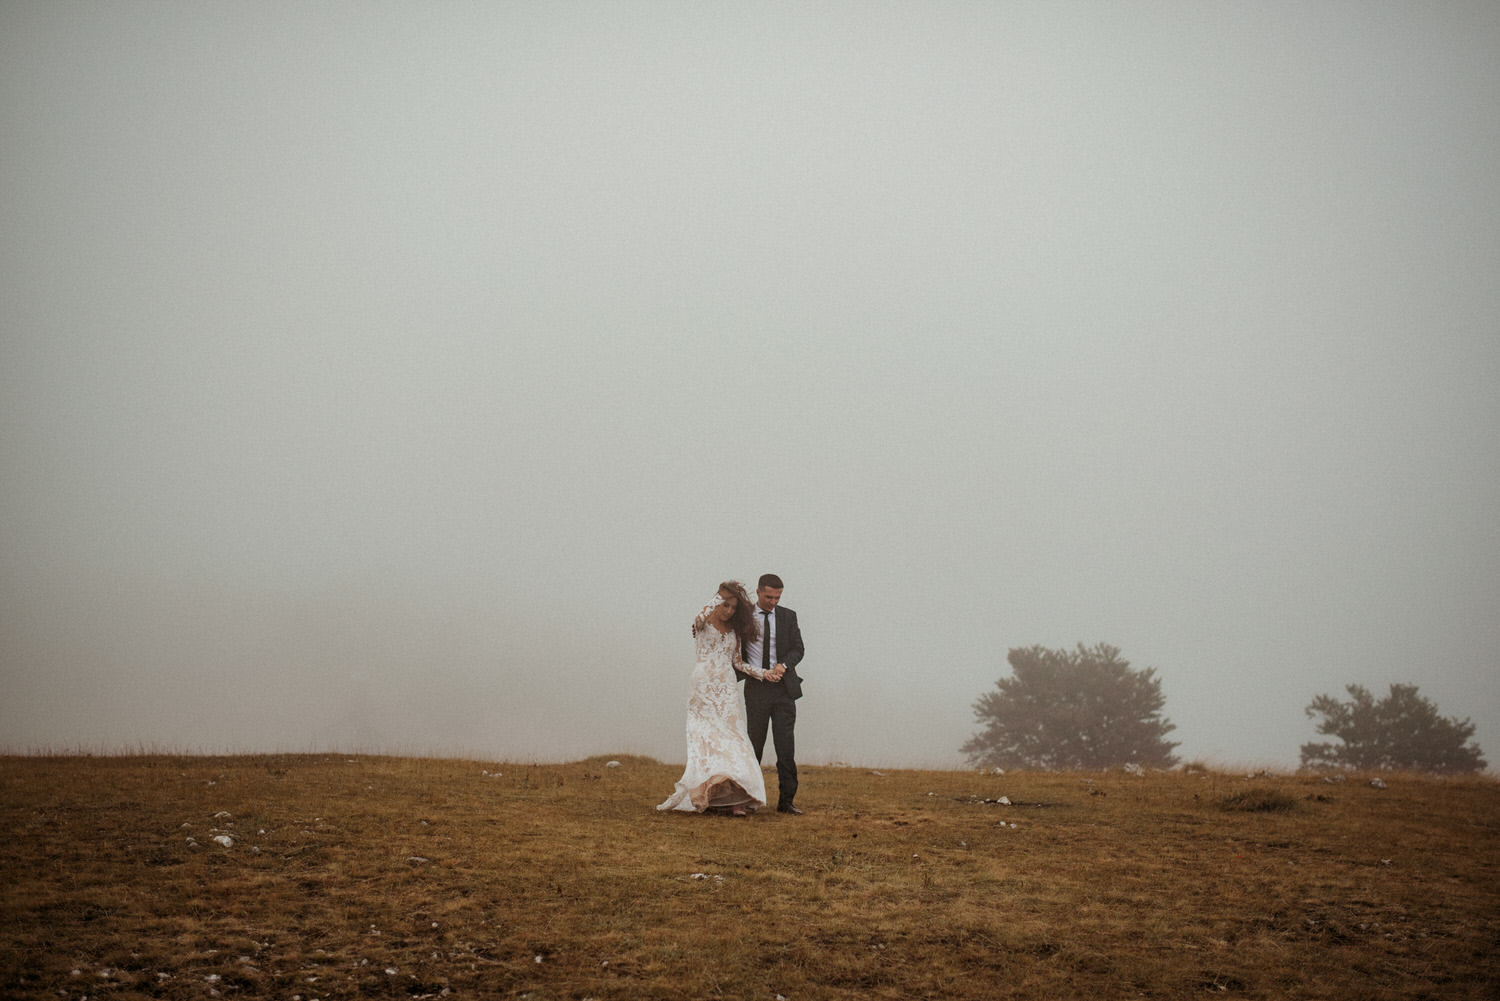 Vlasic Mountain Wedding Photography with moody weather